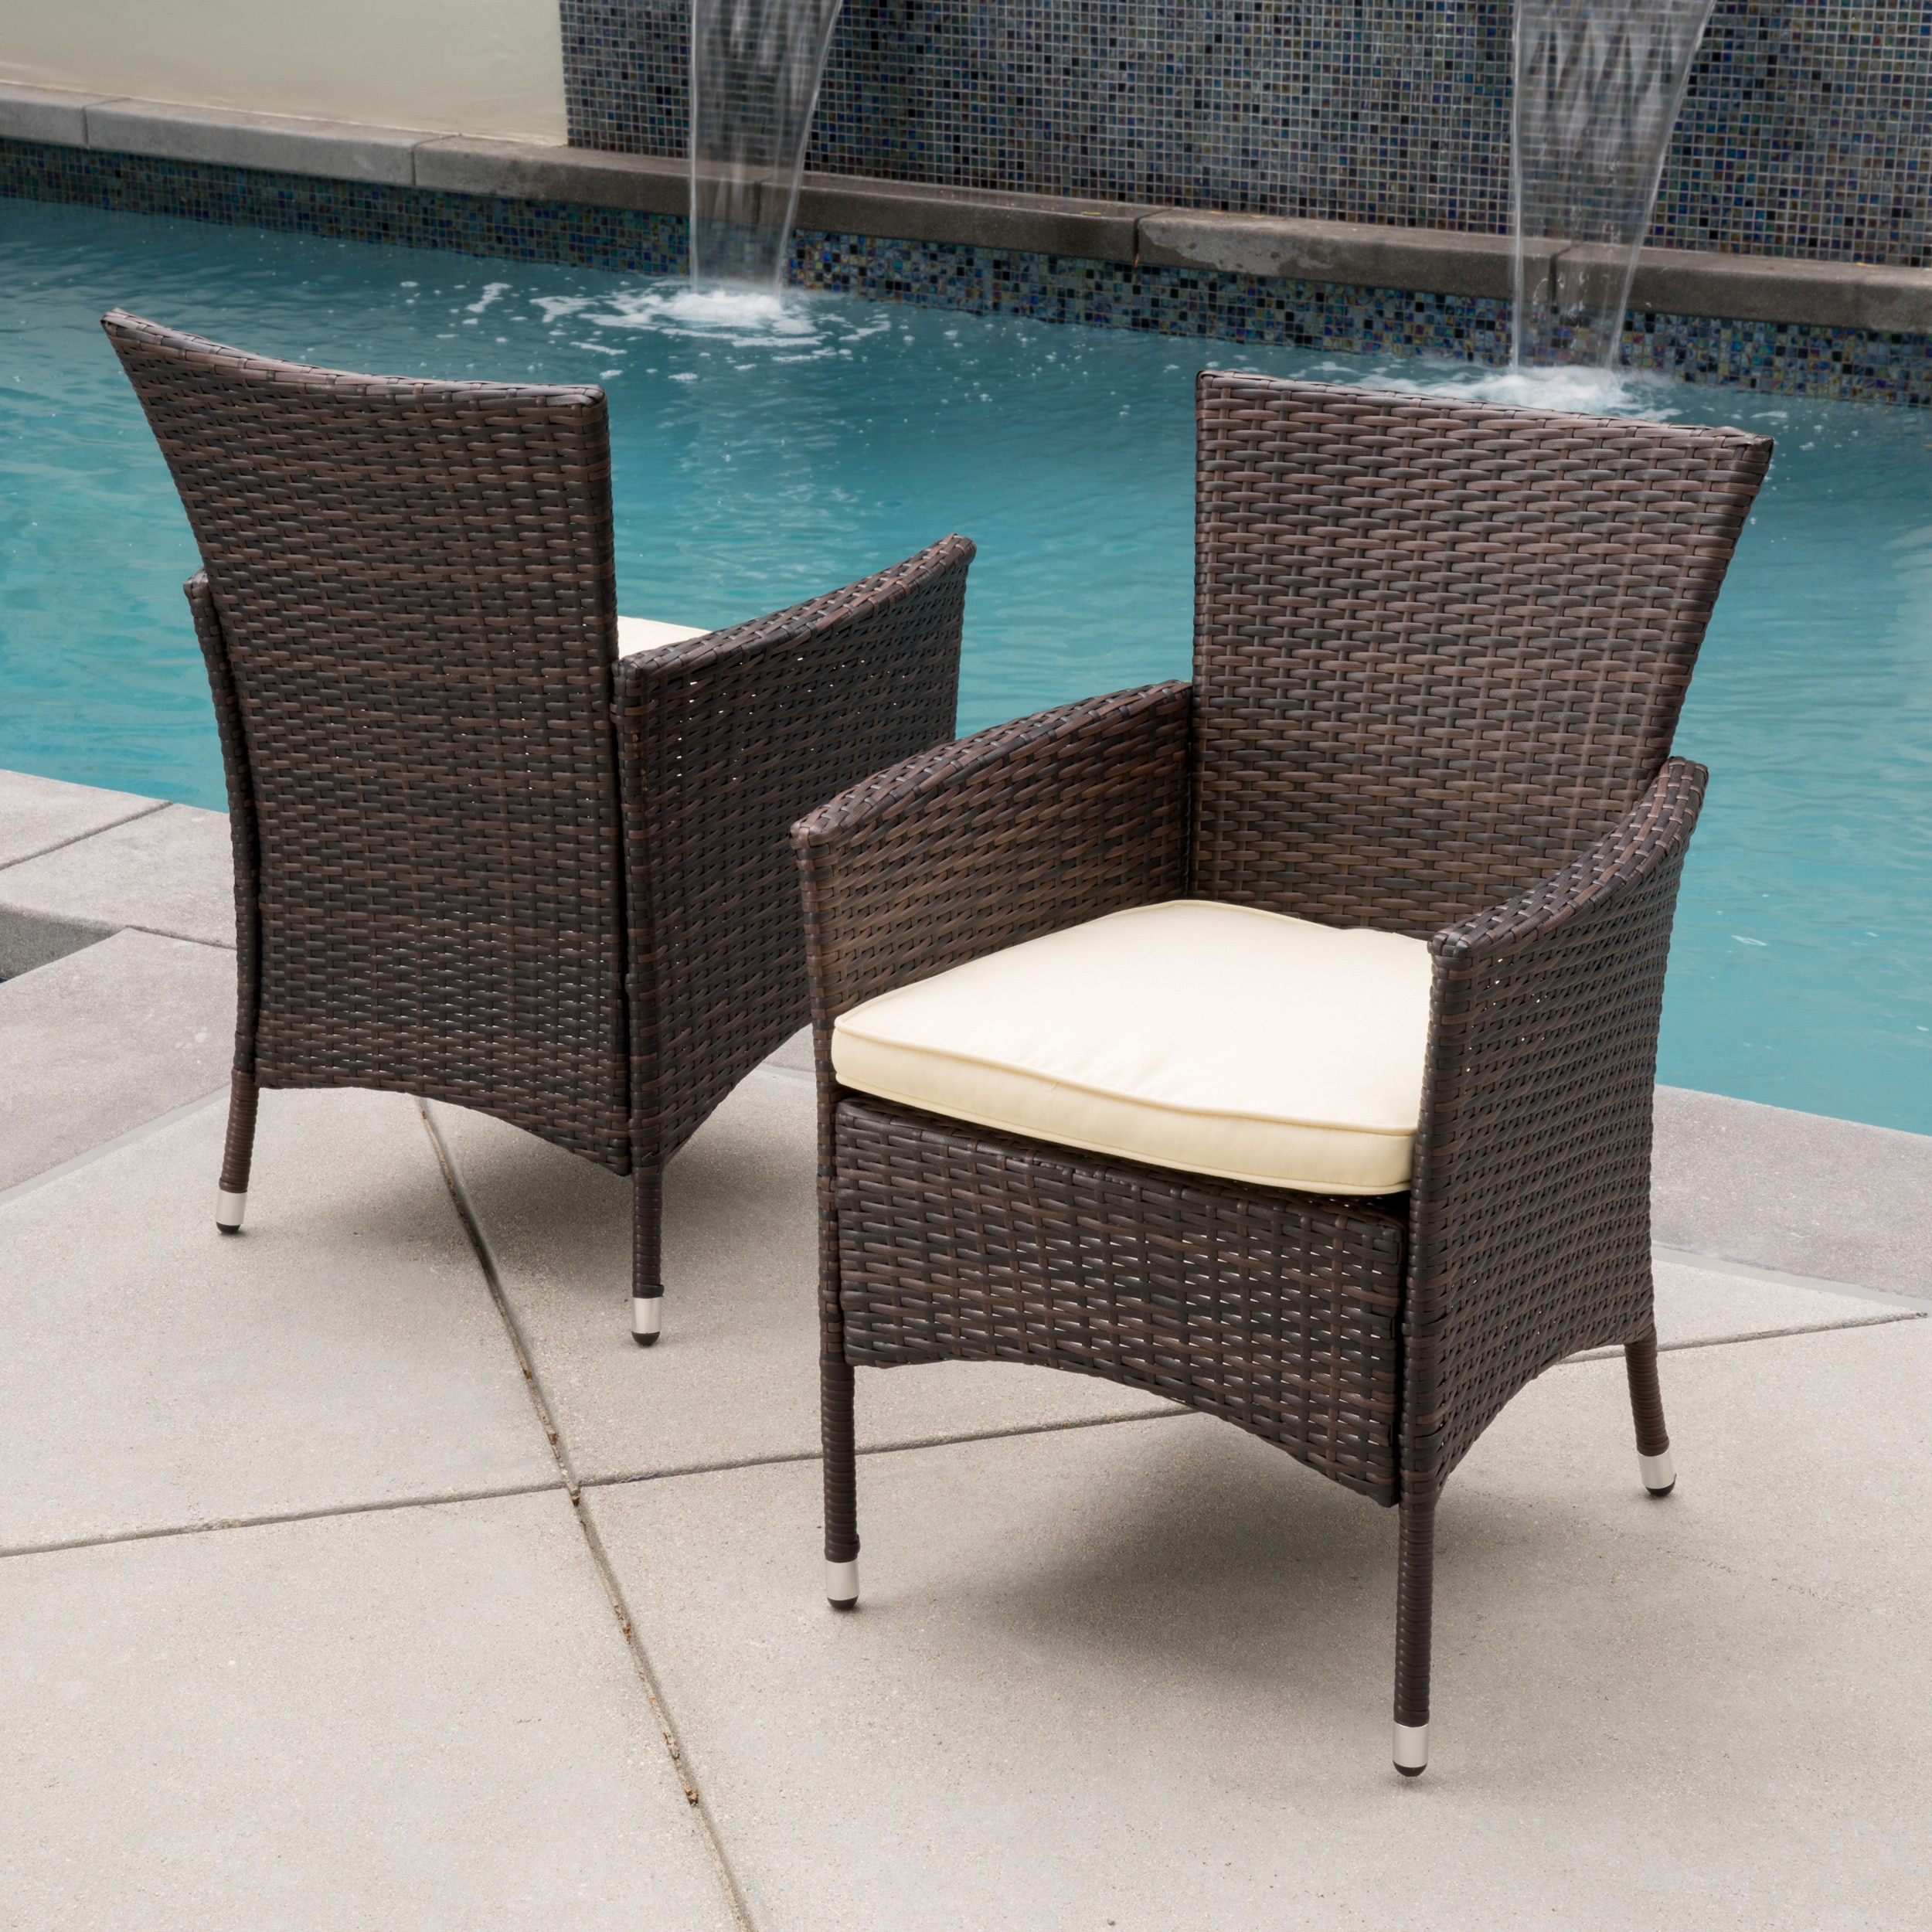 Outdoor Wicker Dining Chairs Malta Outdoor Wicker Dining Chair With Cushion By Christopher Knight Home Set Of 2